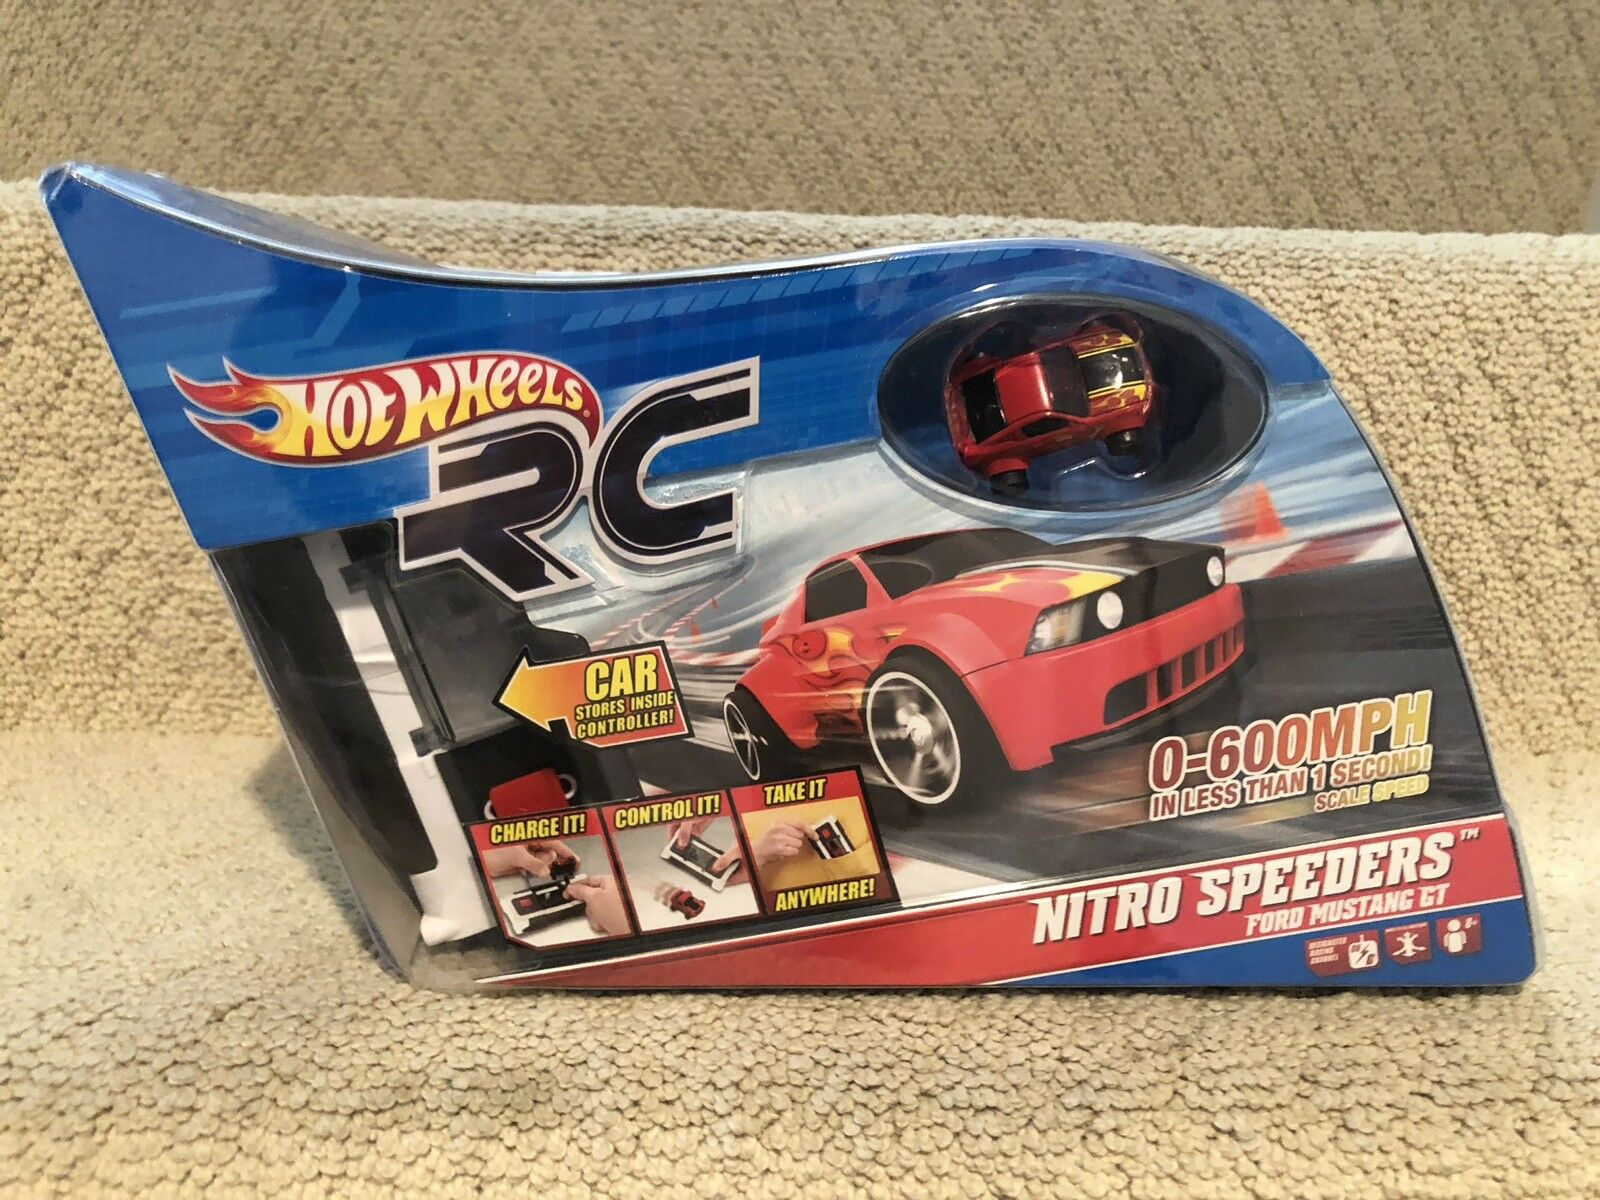 Hot Wheels RC Nitro Speeders Ford Mustang GT w/ Remote & Charger - Nuovo in Box